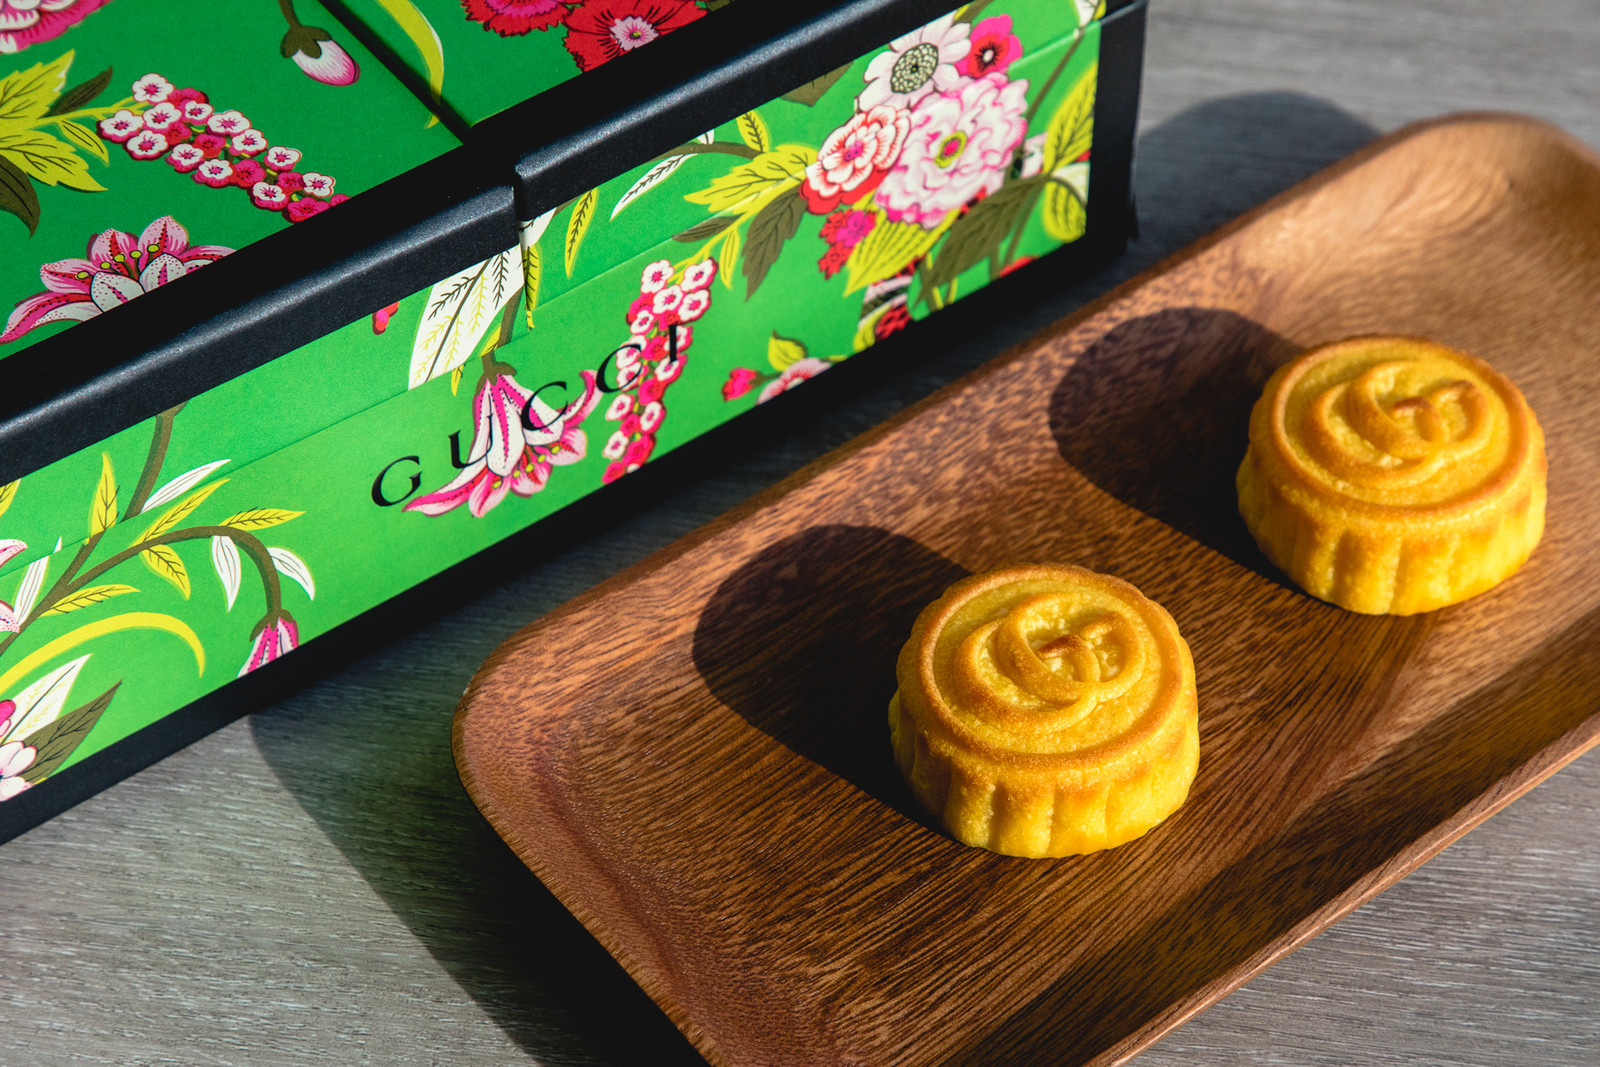 Burberry Louis Vuitton Bape A Bathing Ape Mooncake Mid-Autumn Festival Hong Kong Salvatore Ferragamo Thomas Burberry Gucci Fashion House Luxury Foodbeast Foodie Collectible Holidays